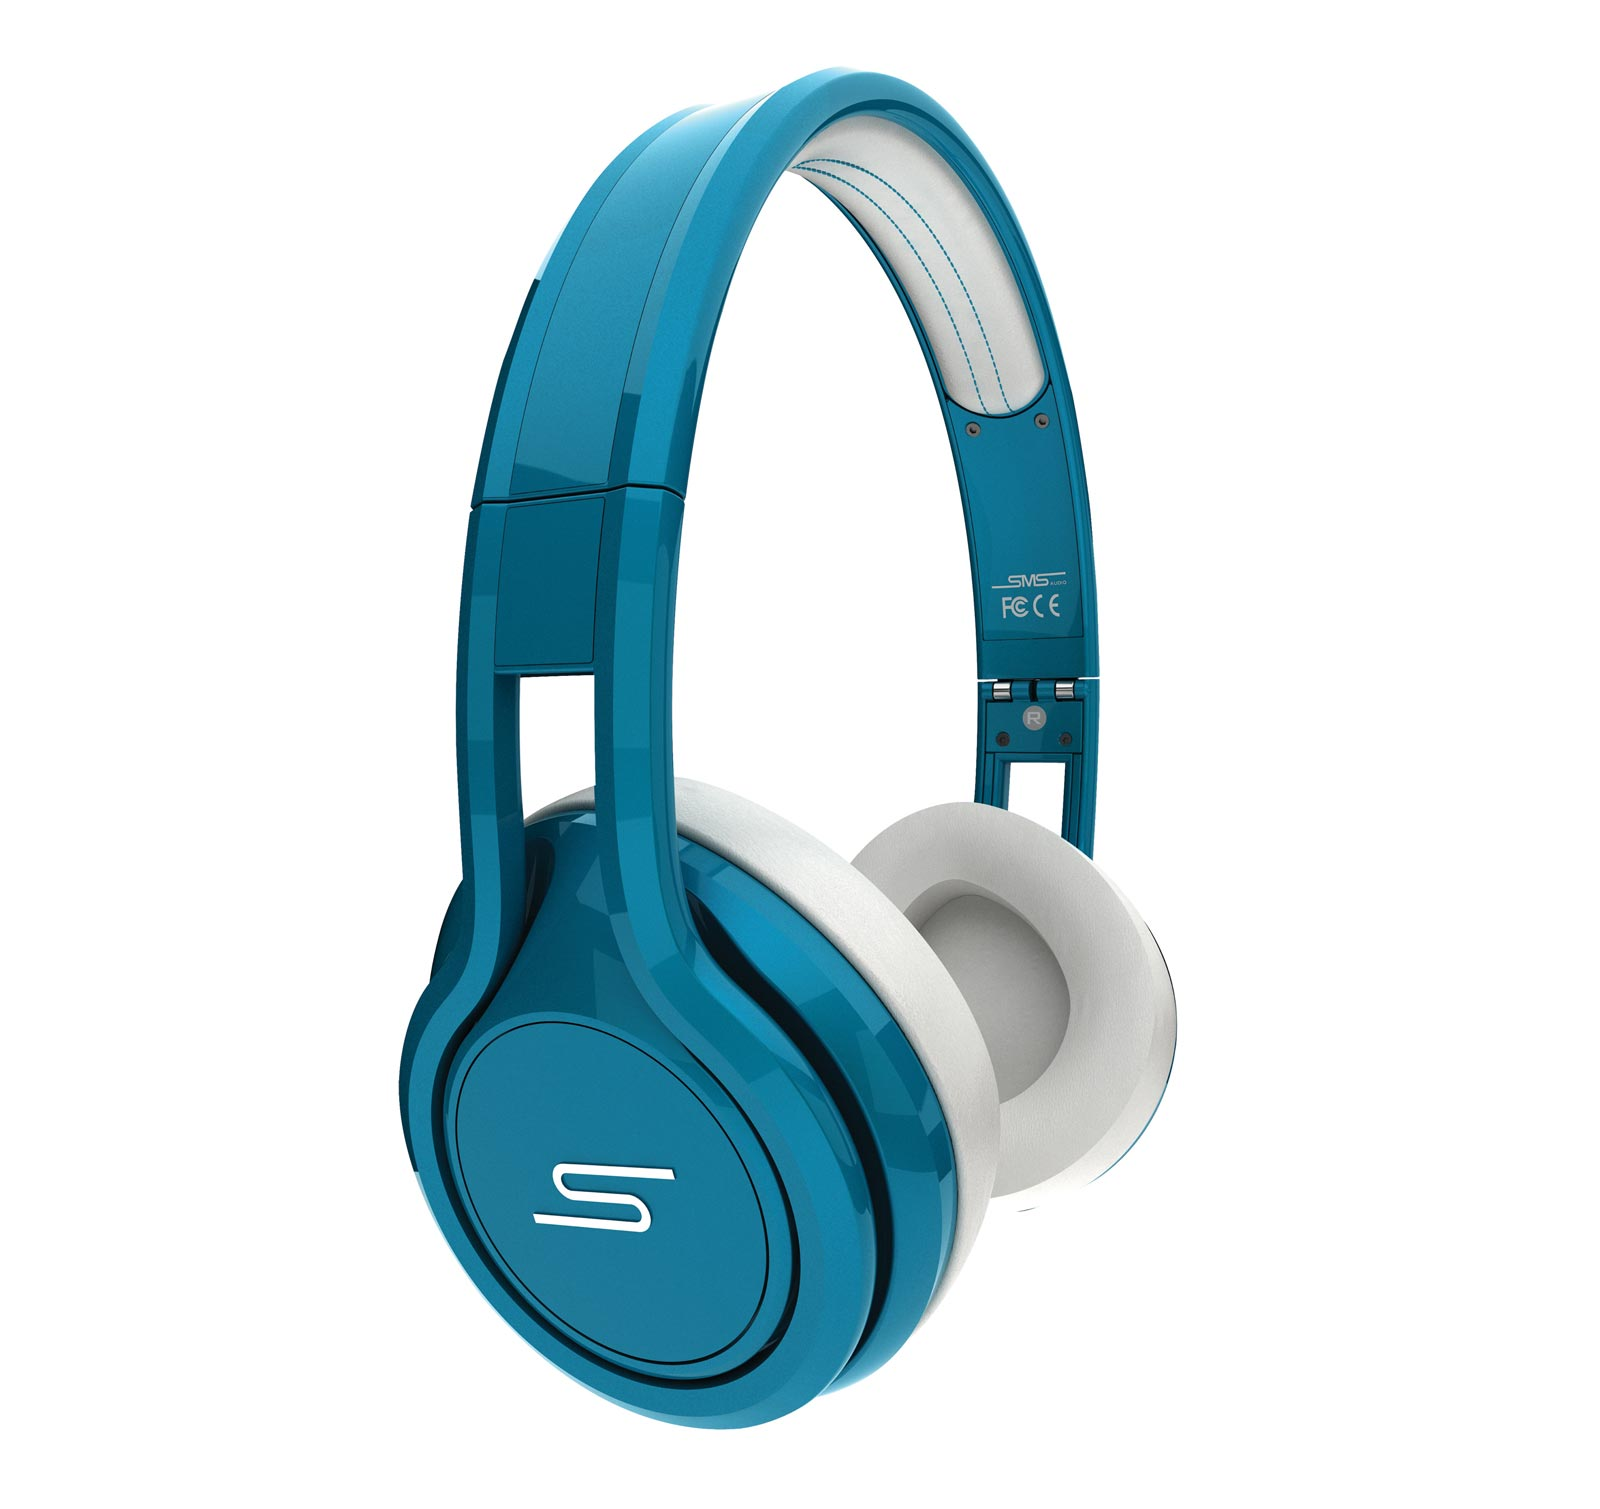 SMS Audio Street by 50 Cent Wired On-Ear - Open Box Headphones - Teal